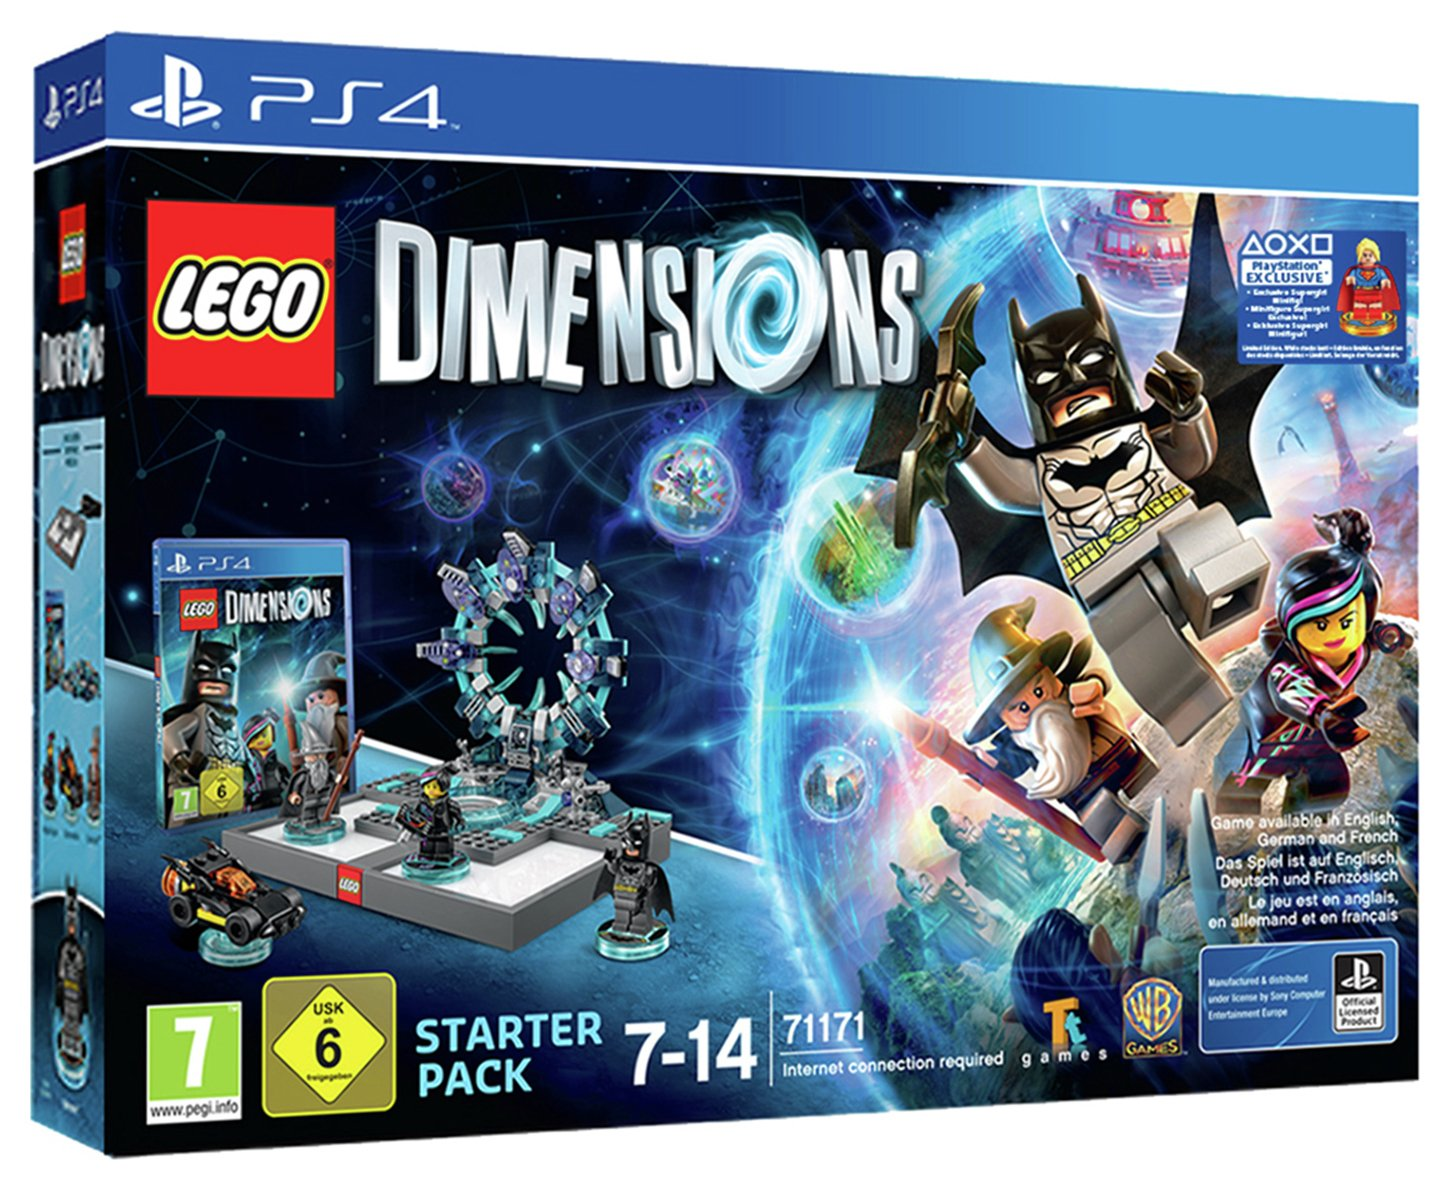 LEGO - Dimensions Supergirl - PS4 - Starter Pack Game Review thumbnail